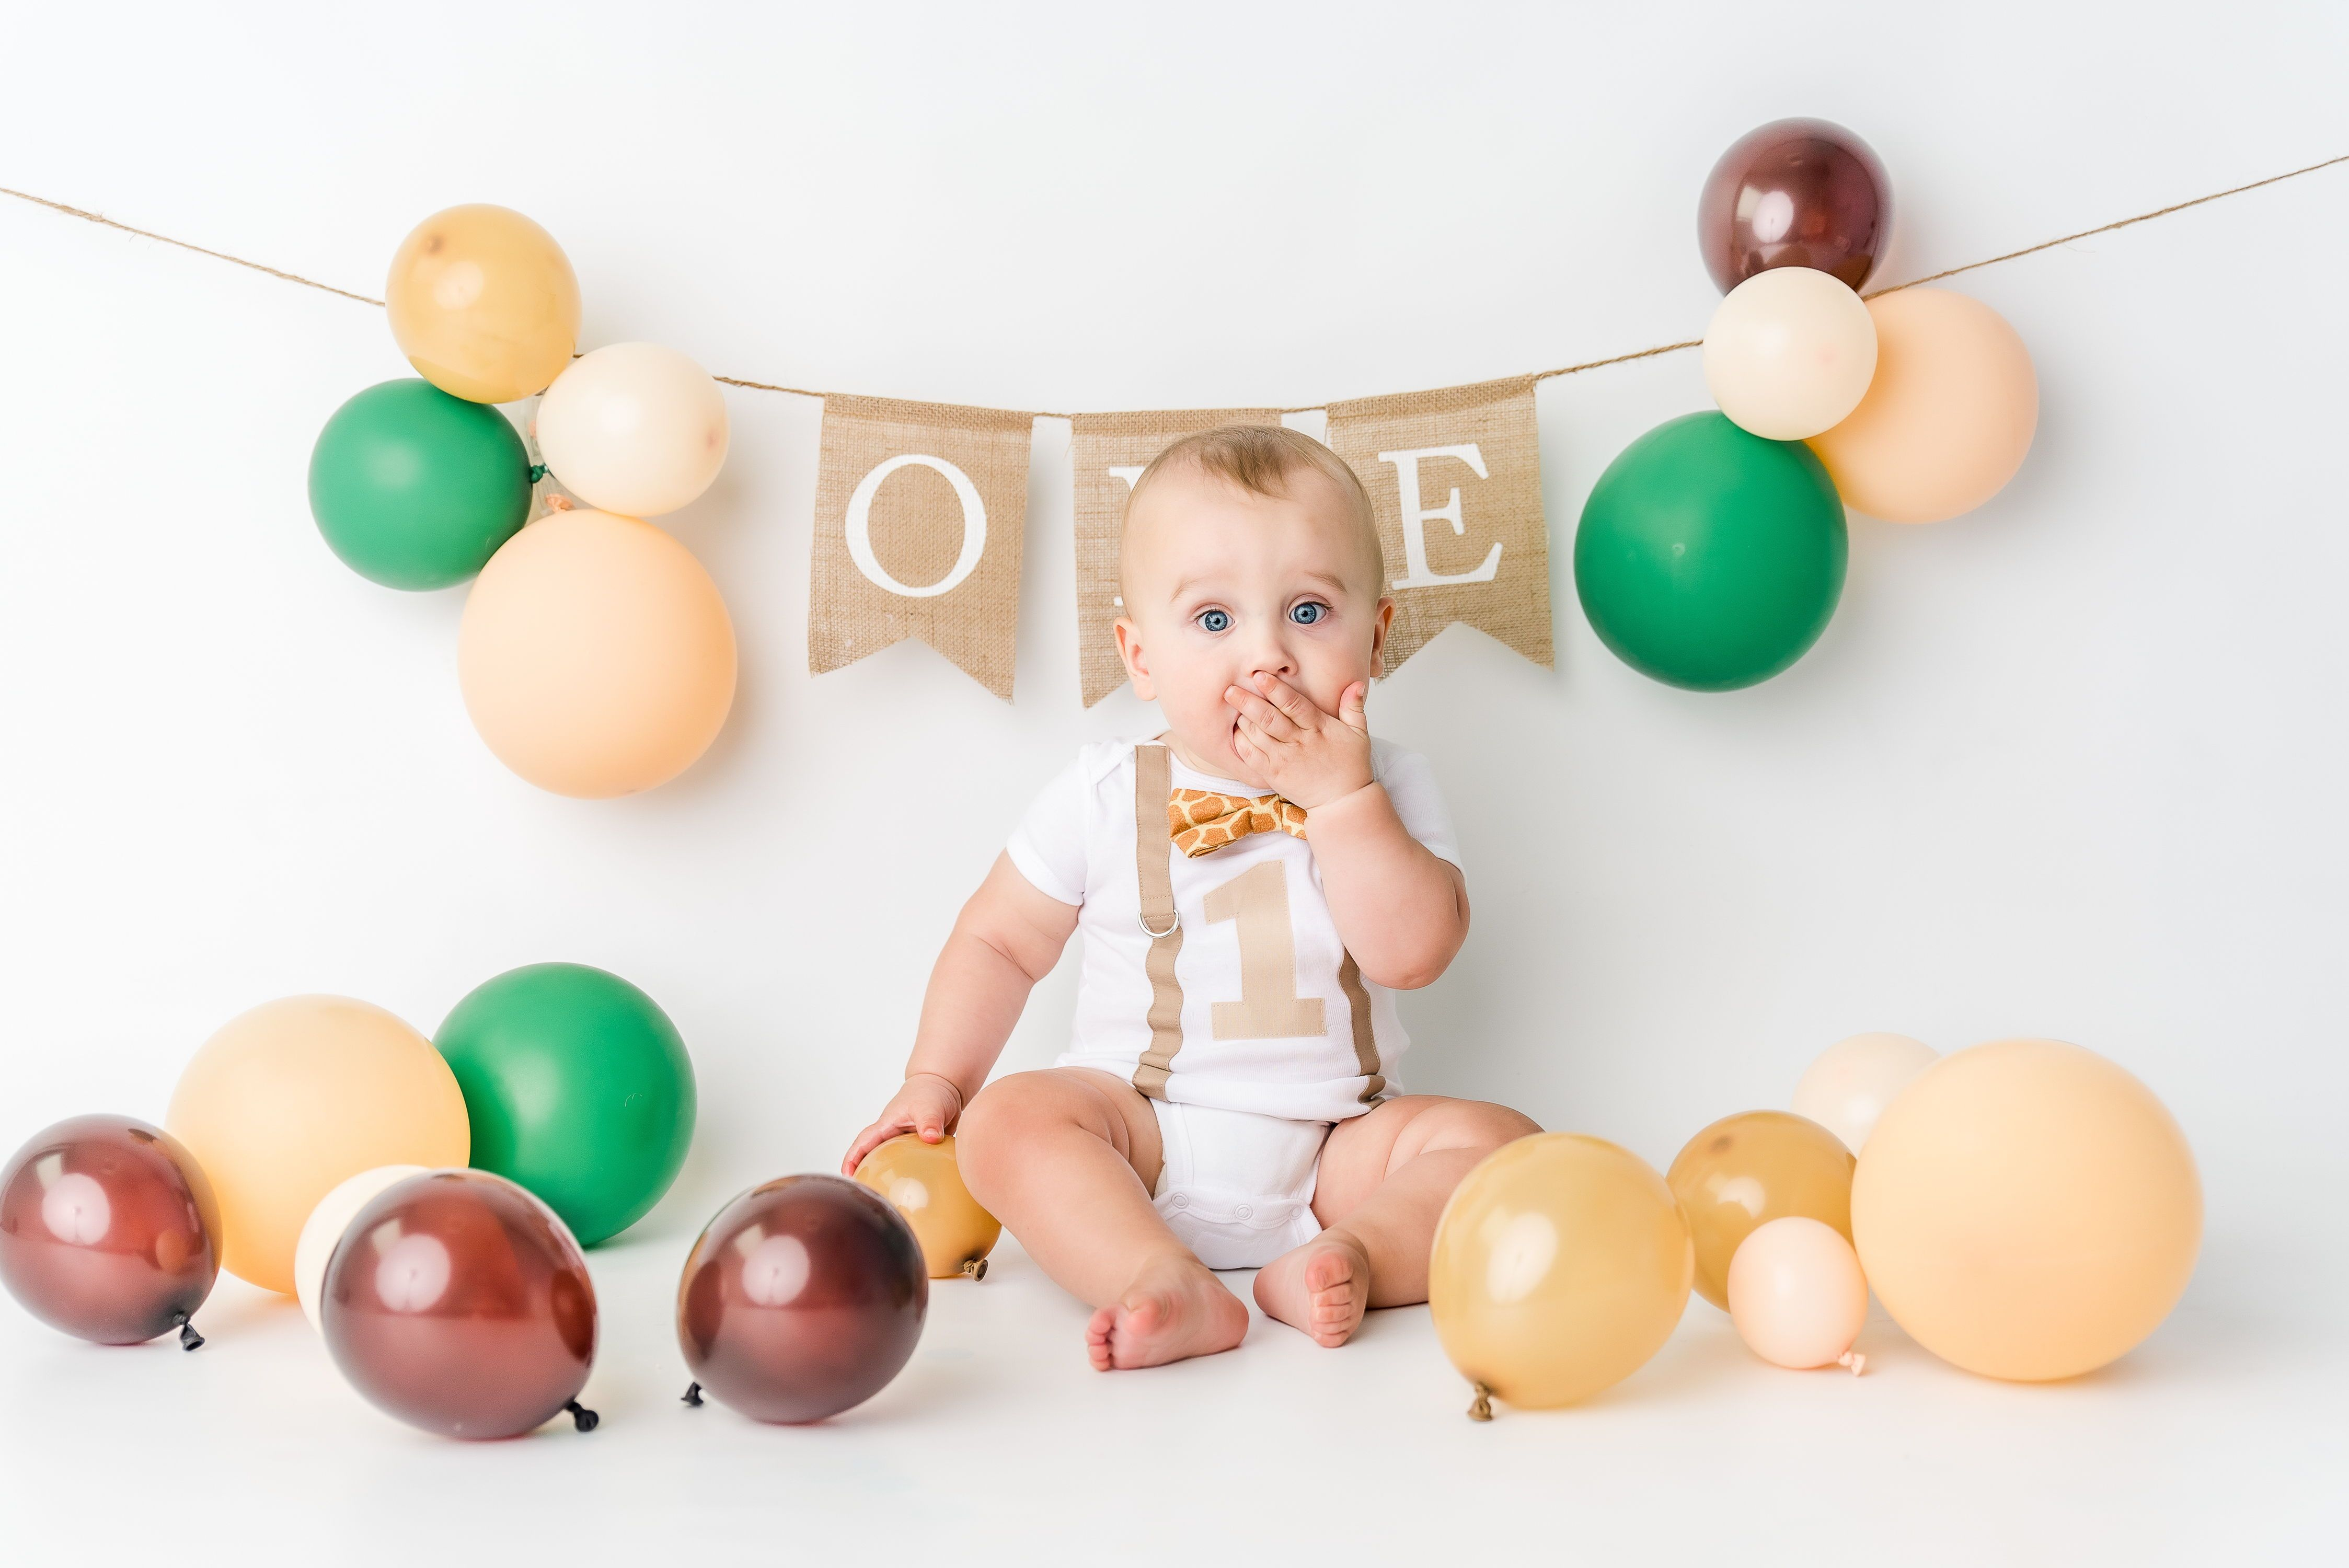 23 Jungle 1st Birthday Outfit Ideas Boy 1st Birthday Outfits 1st Birthday Cake Smash Outfit